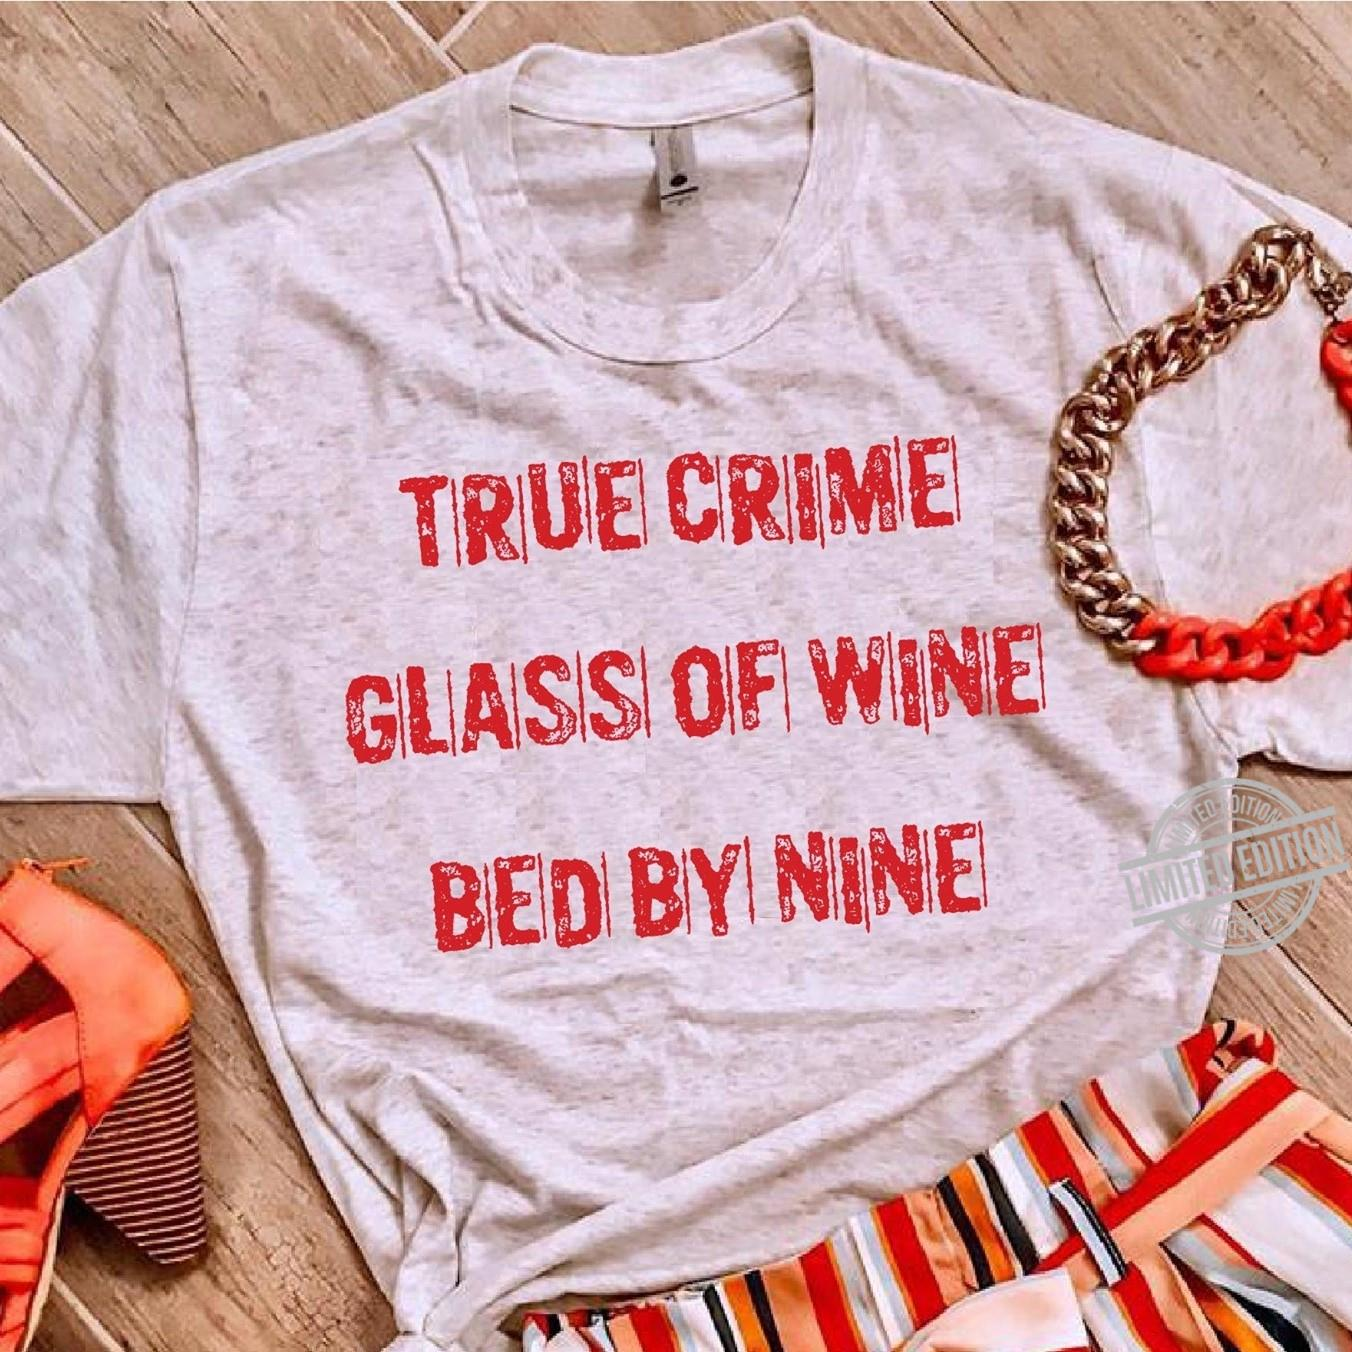 True Crime Glass Of Wine Bed By Nice Shirt